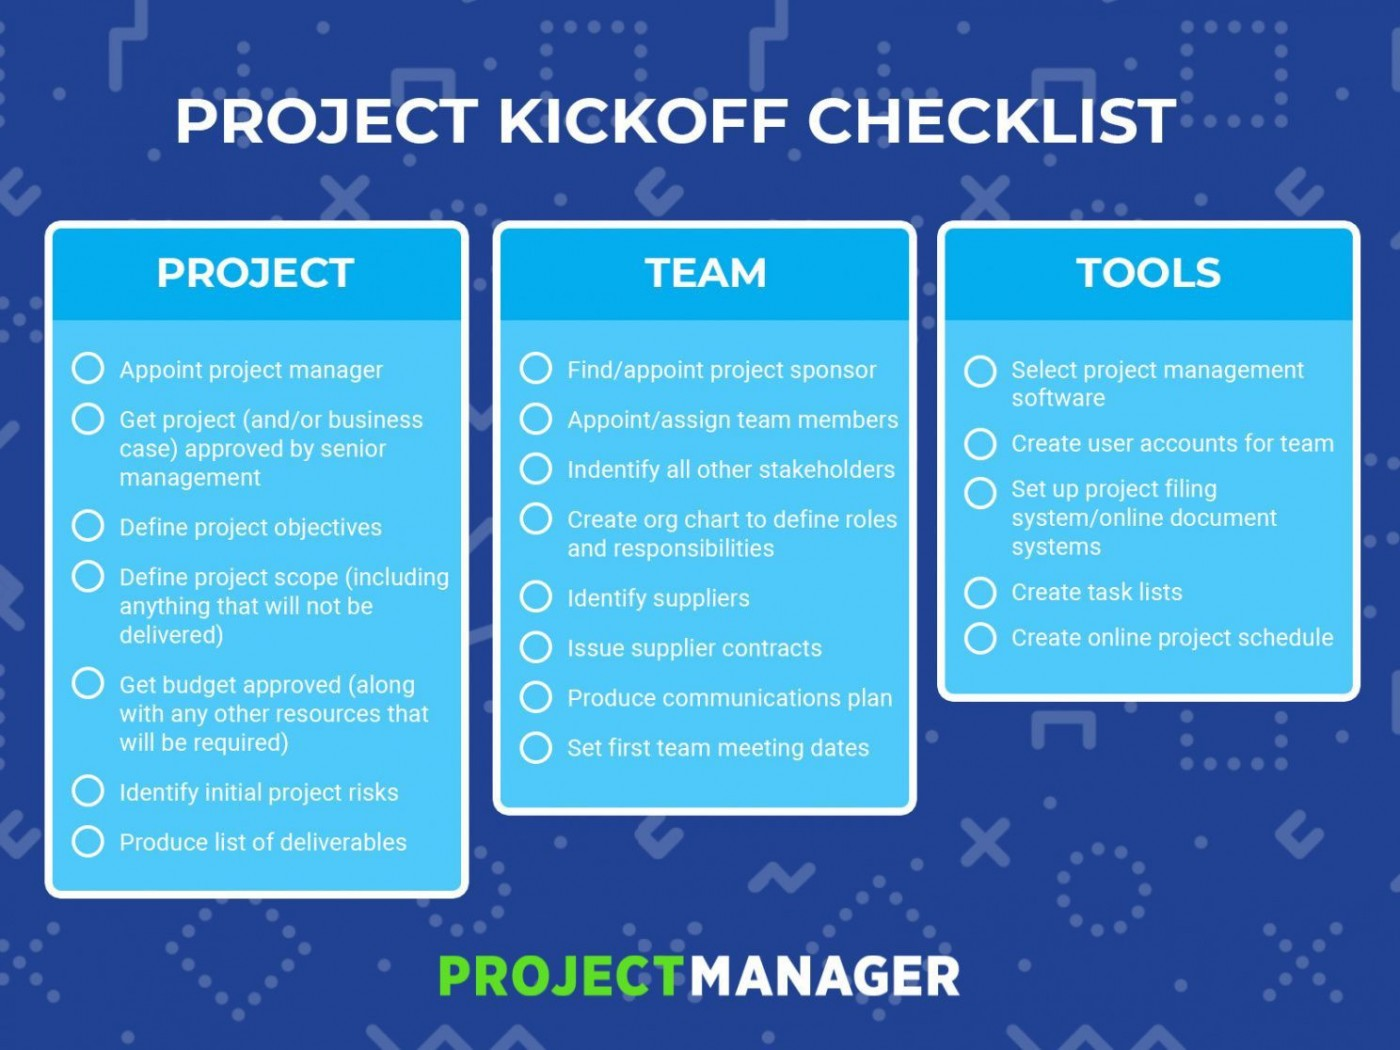 005 Impressive Project Kickoff Meeting Powerpoint Template Ppt Sample  Kick Off Presentation1400